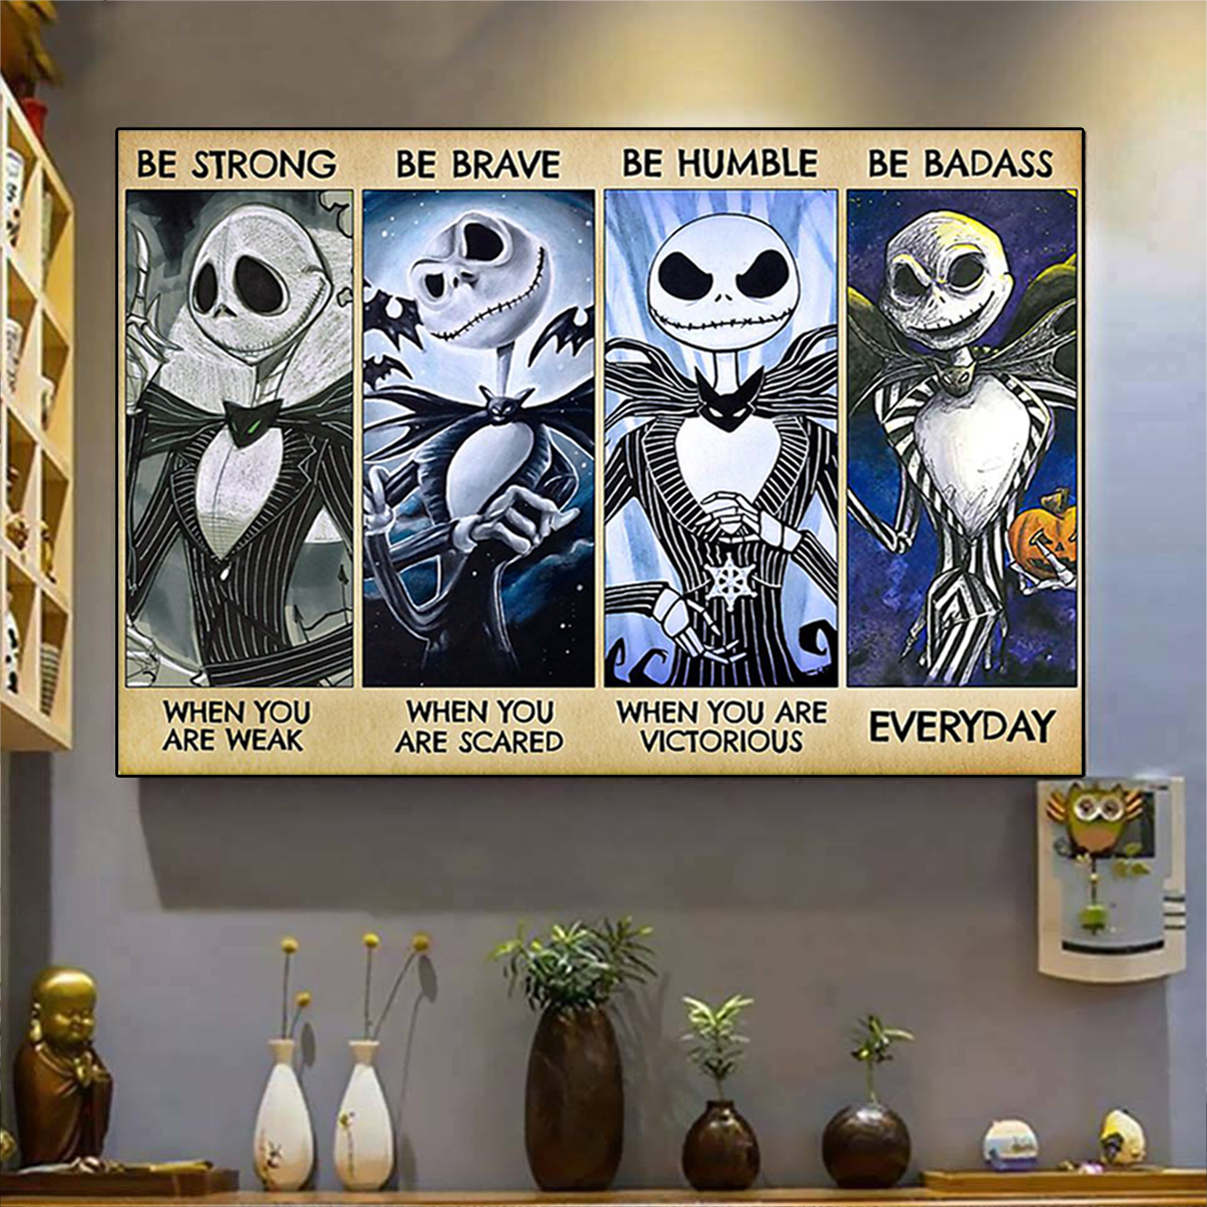 Jack skellington be strong be brave be humble be badass poster A1